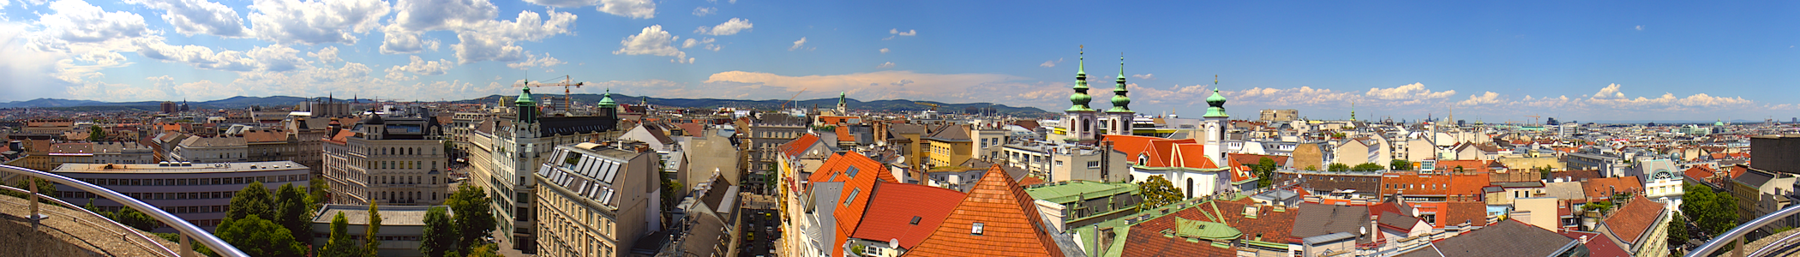 Looking over the rooftops of Vienna from the Haus des Meeres